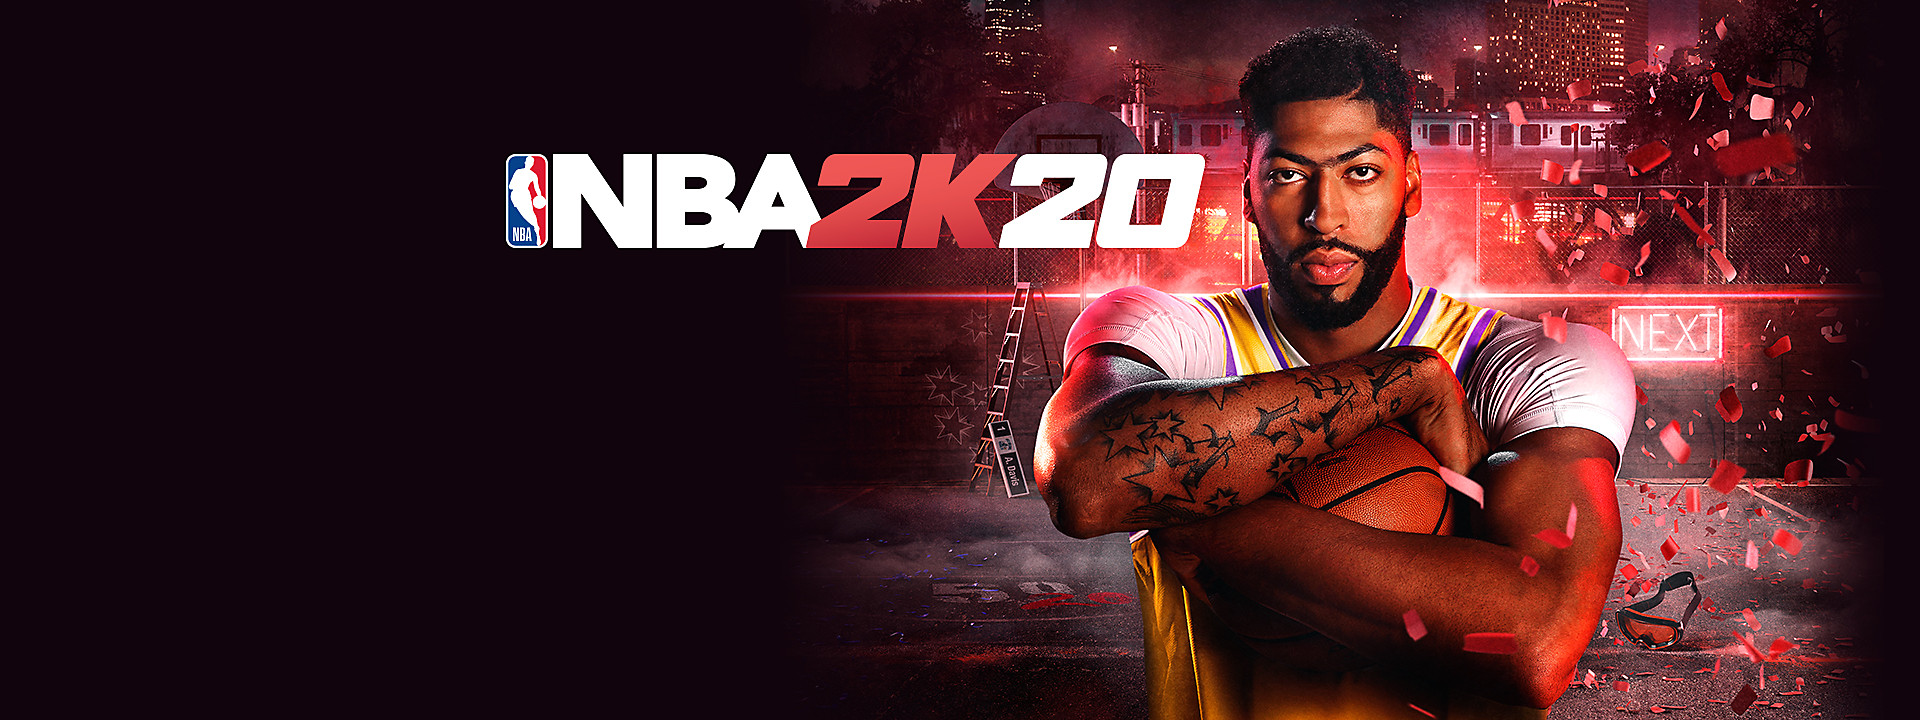 NBA 2K20 - Now Available